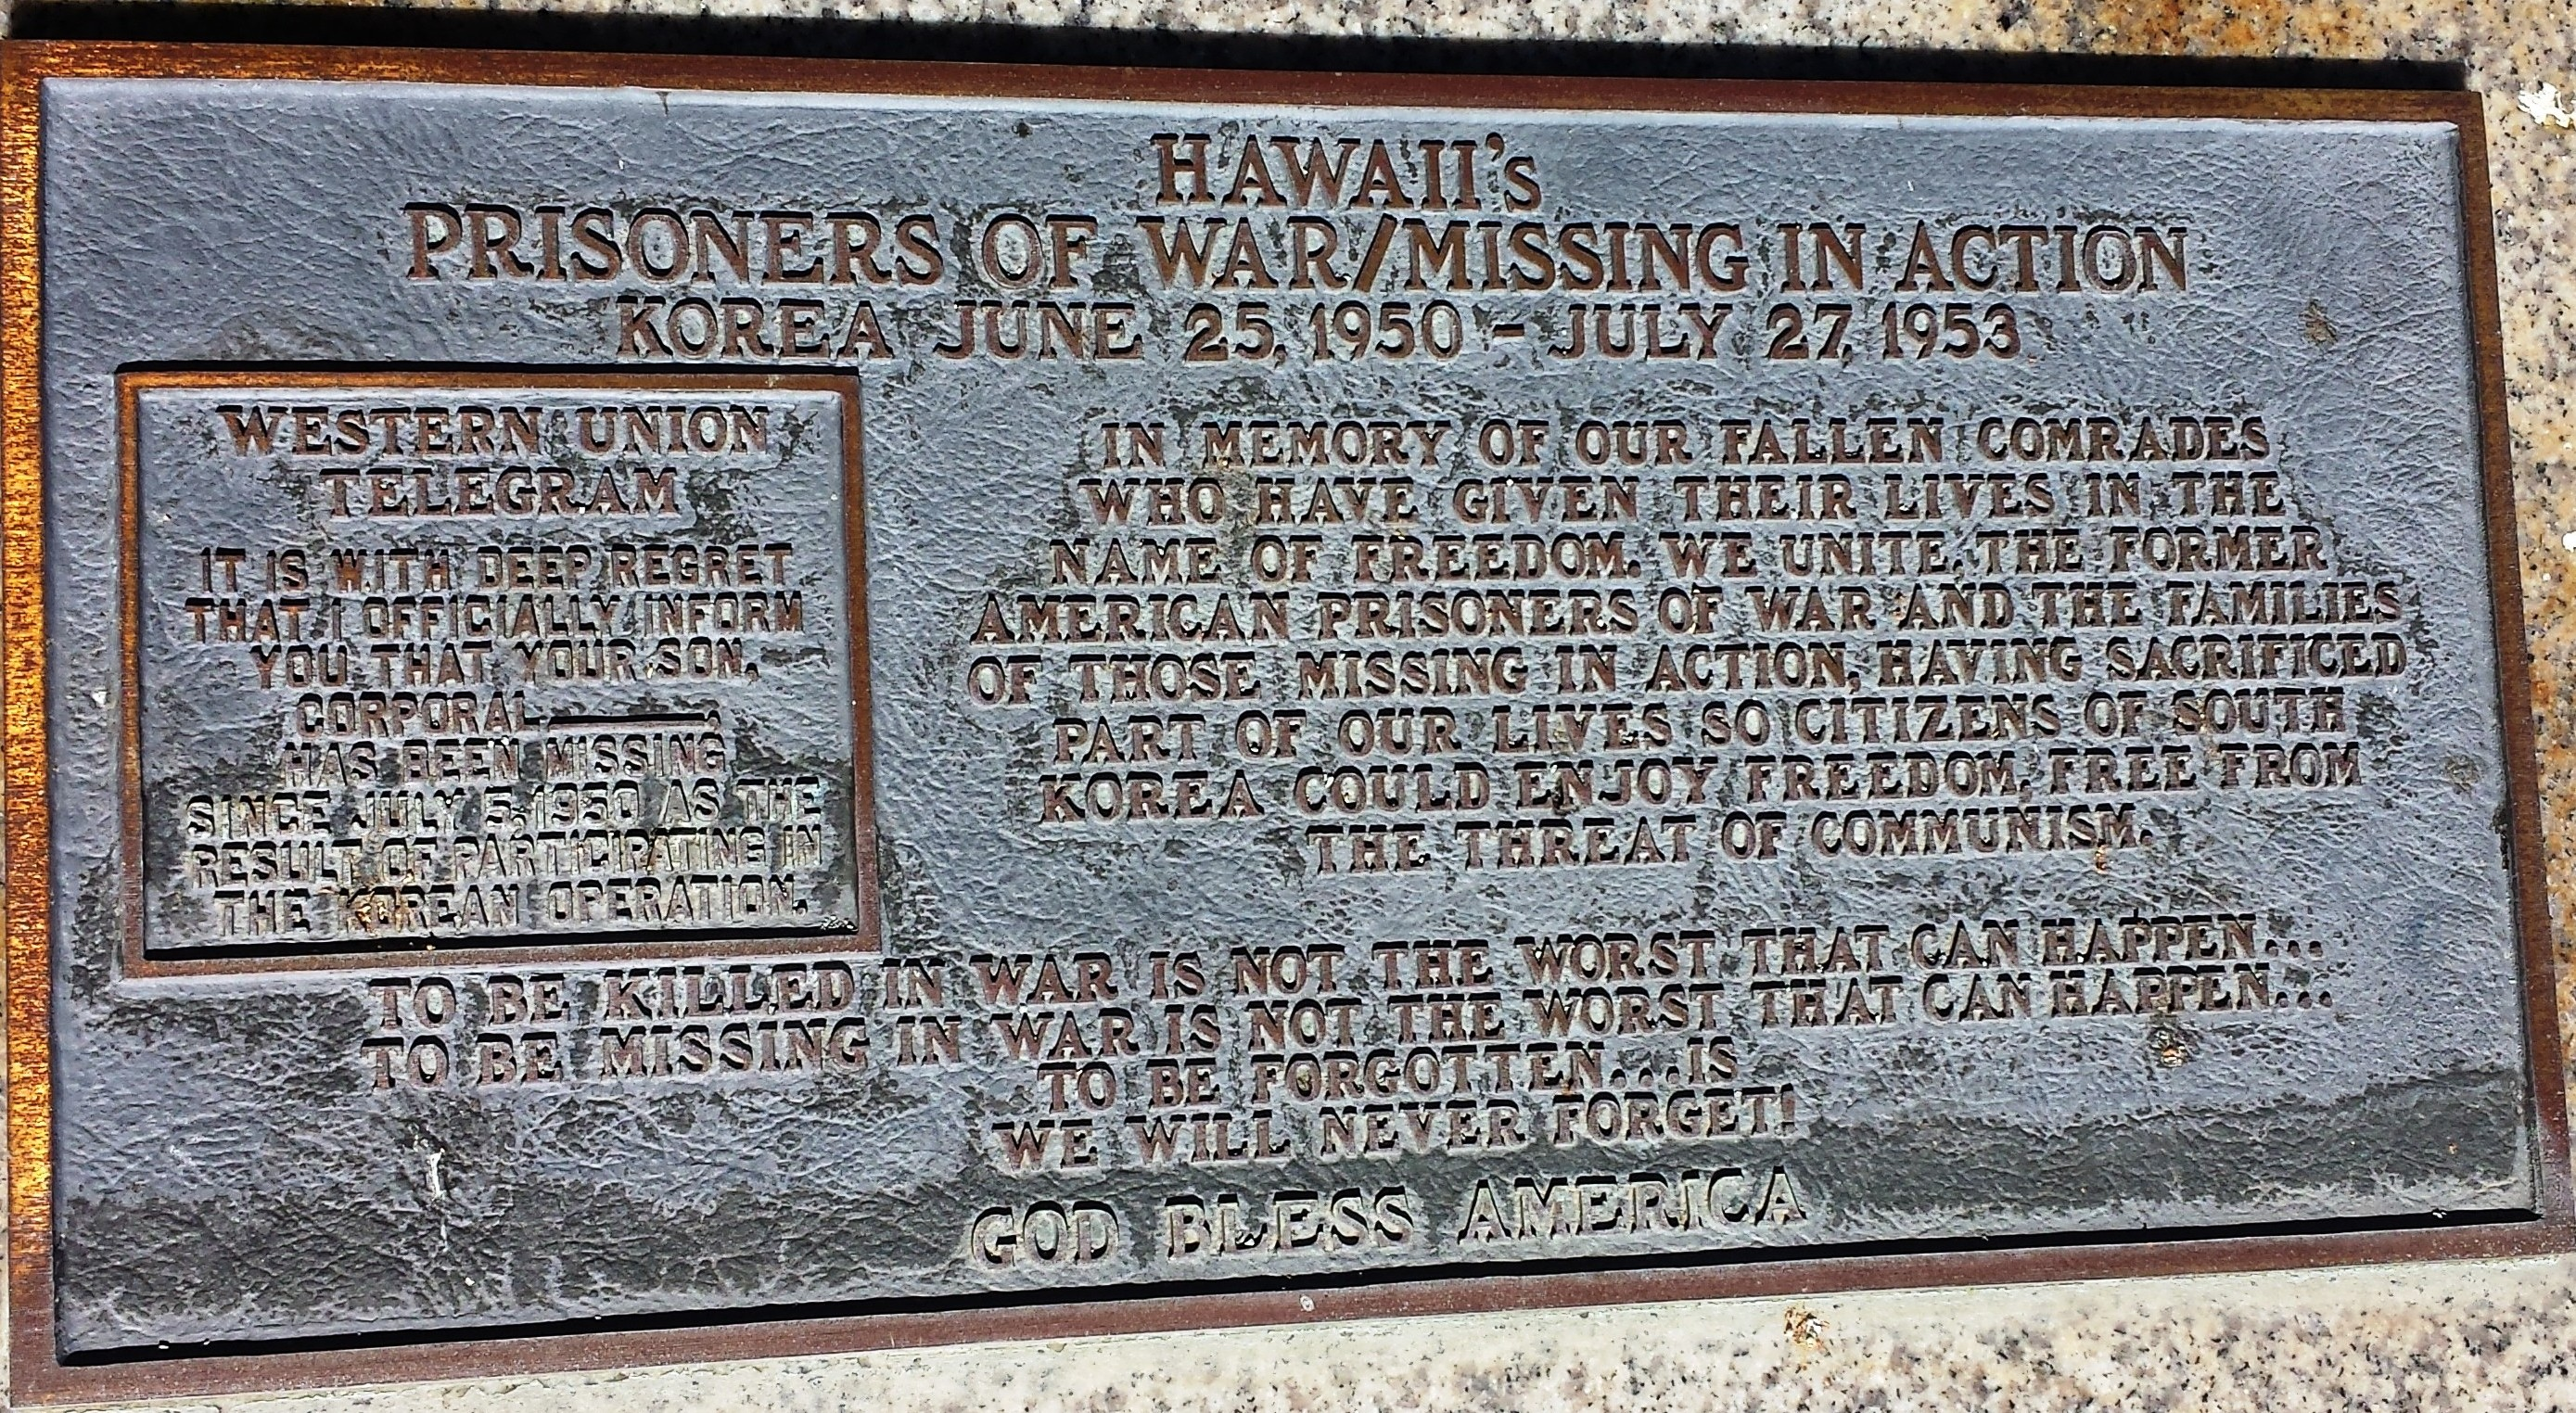 POW/MIA plaque along Memorial walk at Punchbowl National Memorial Cemetery